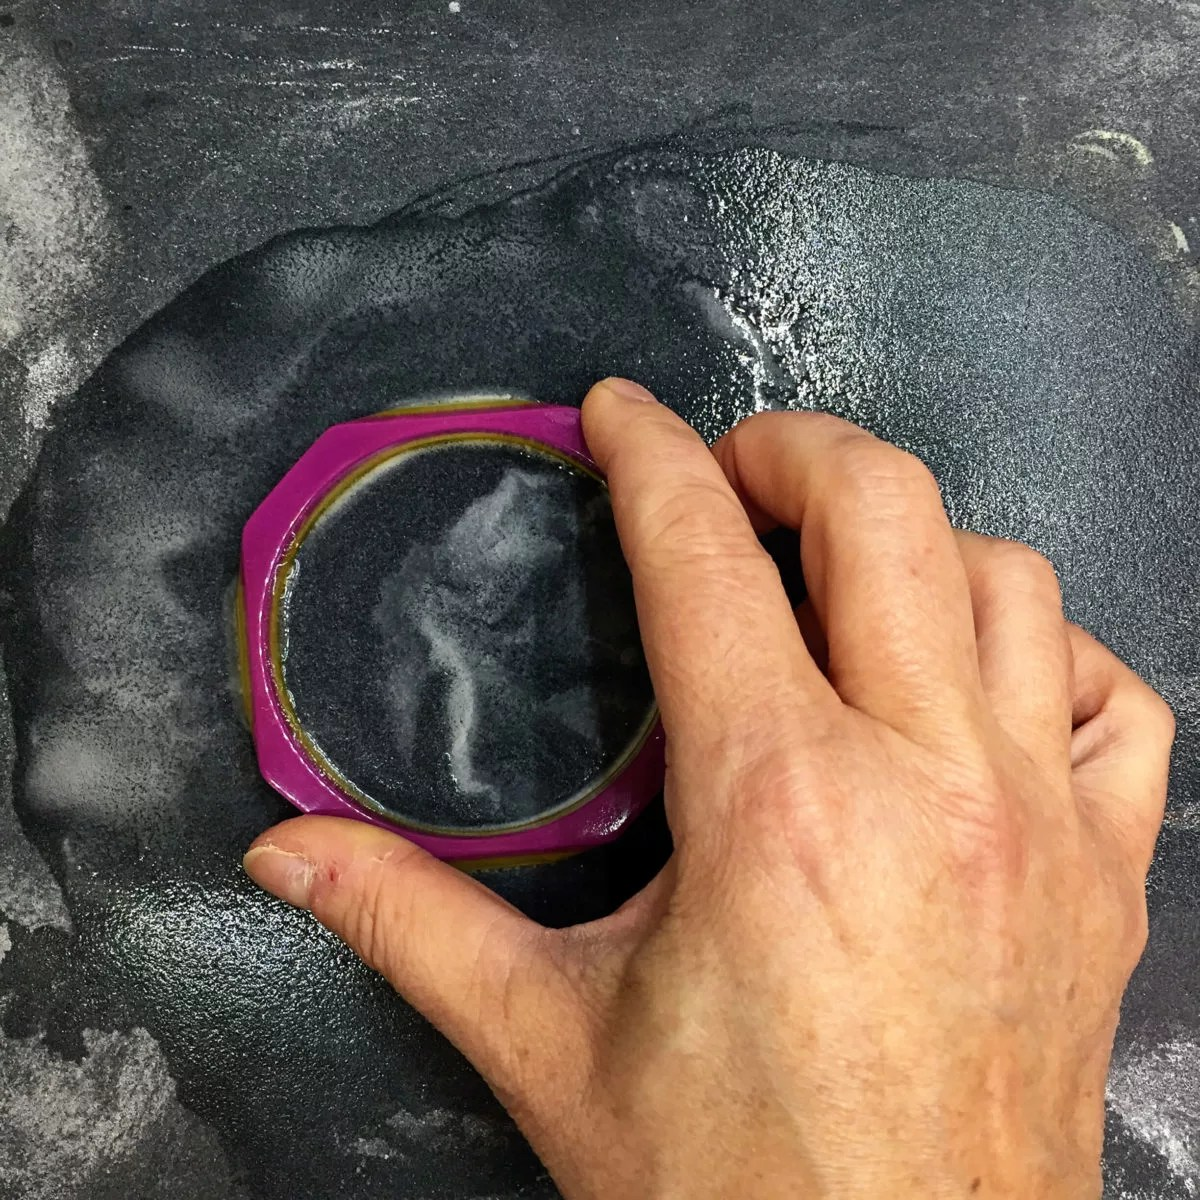 How to sand resin smooth: get a smooth surface on resin art